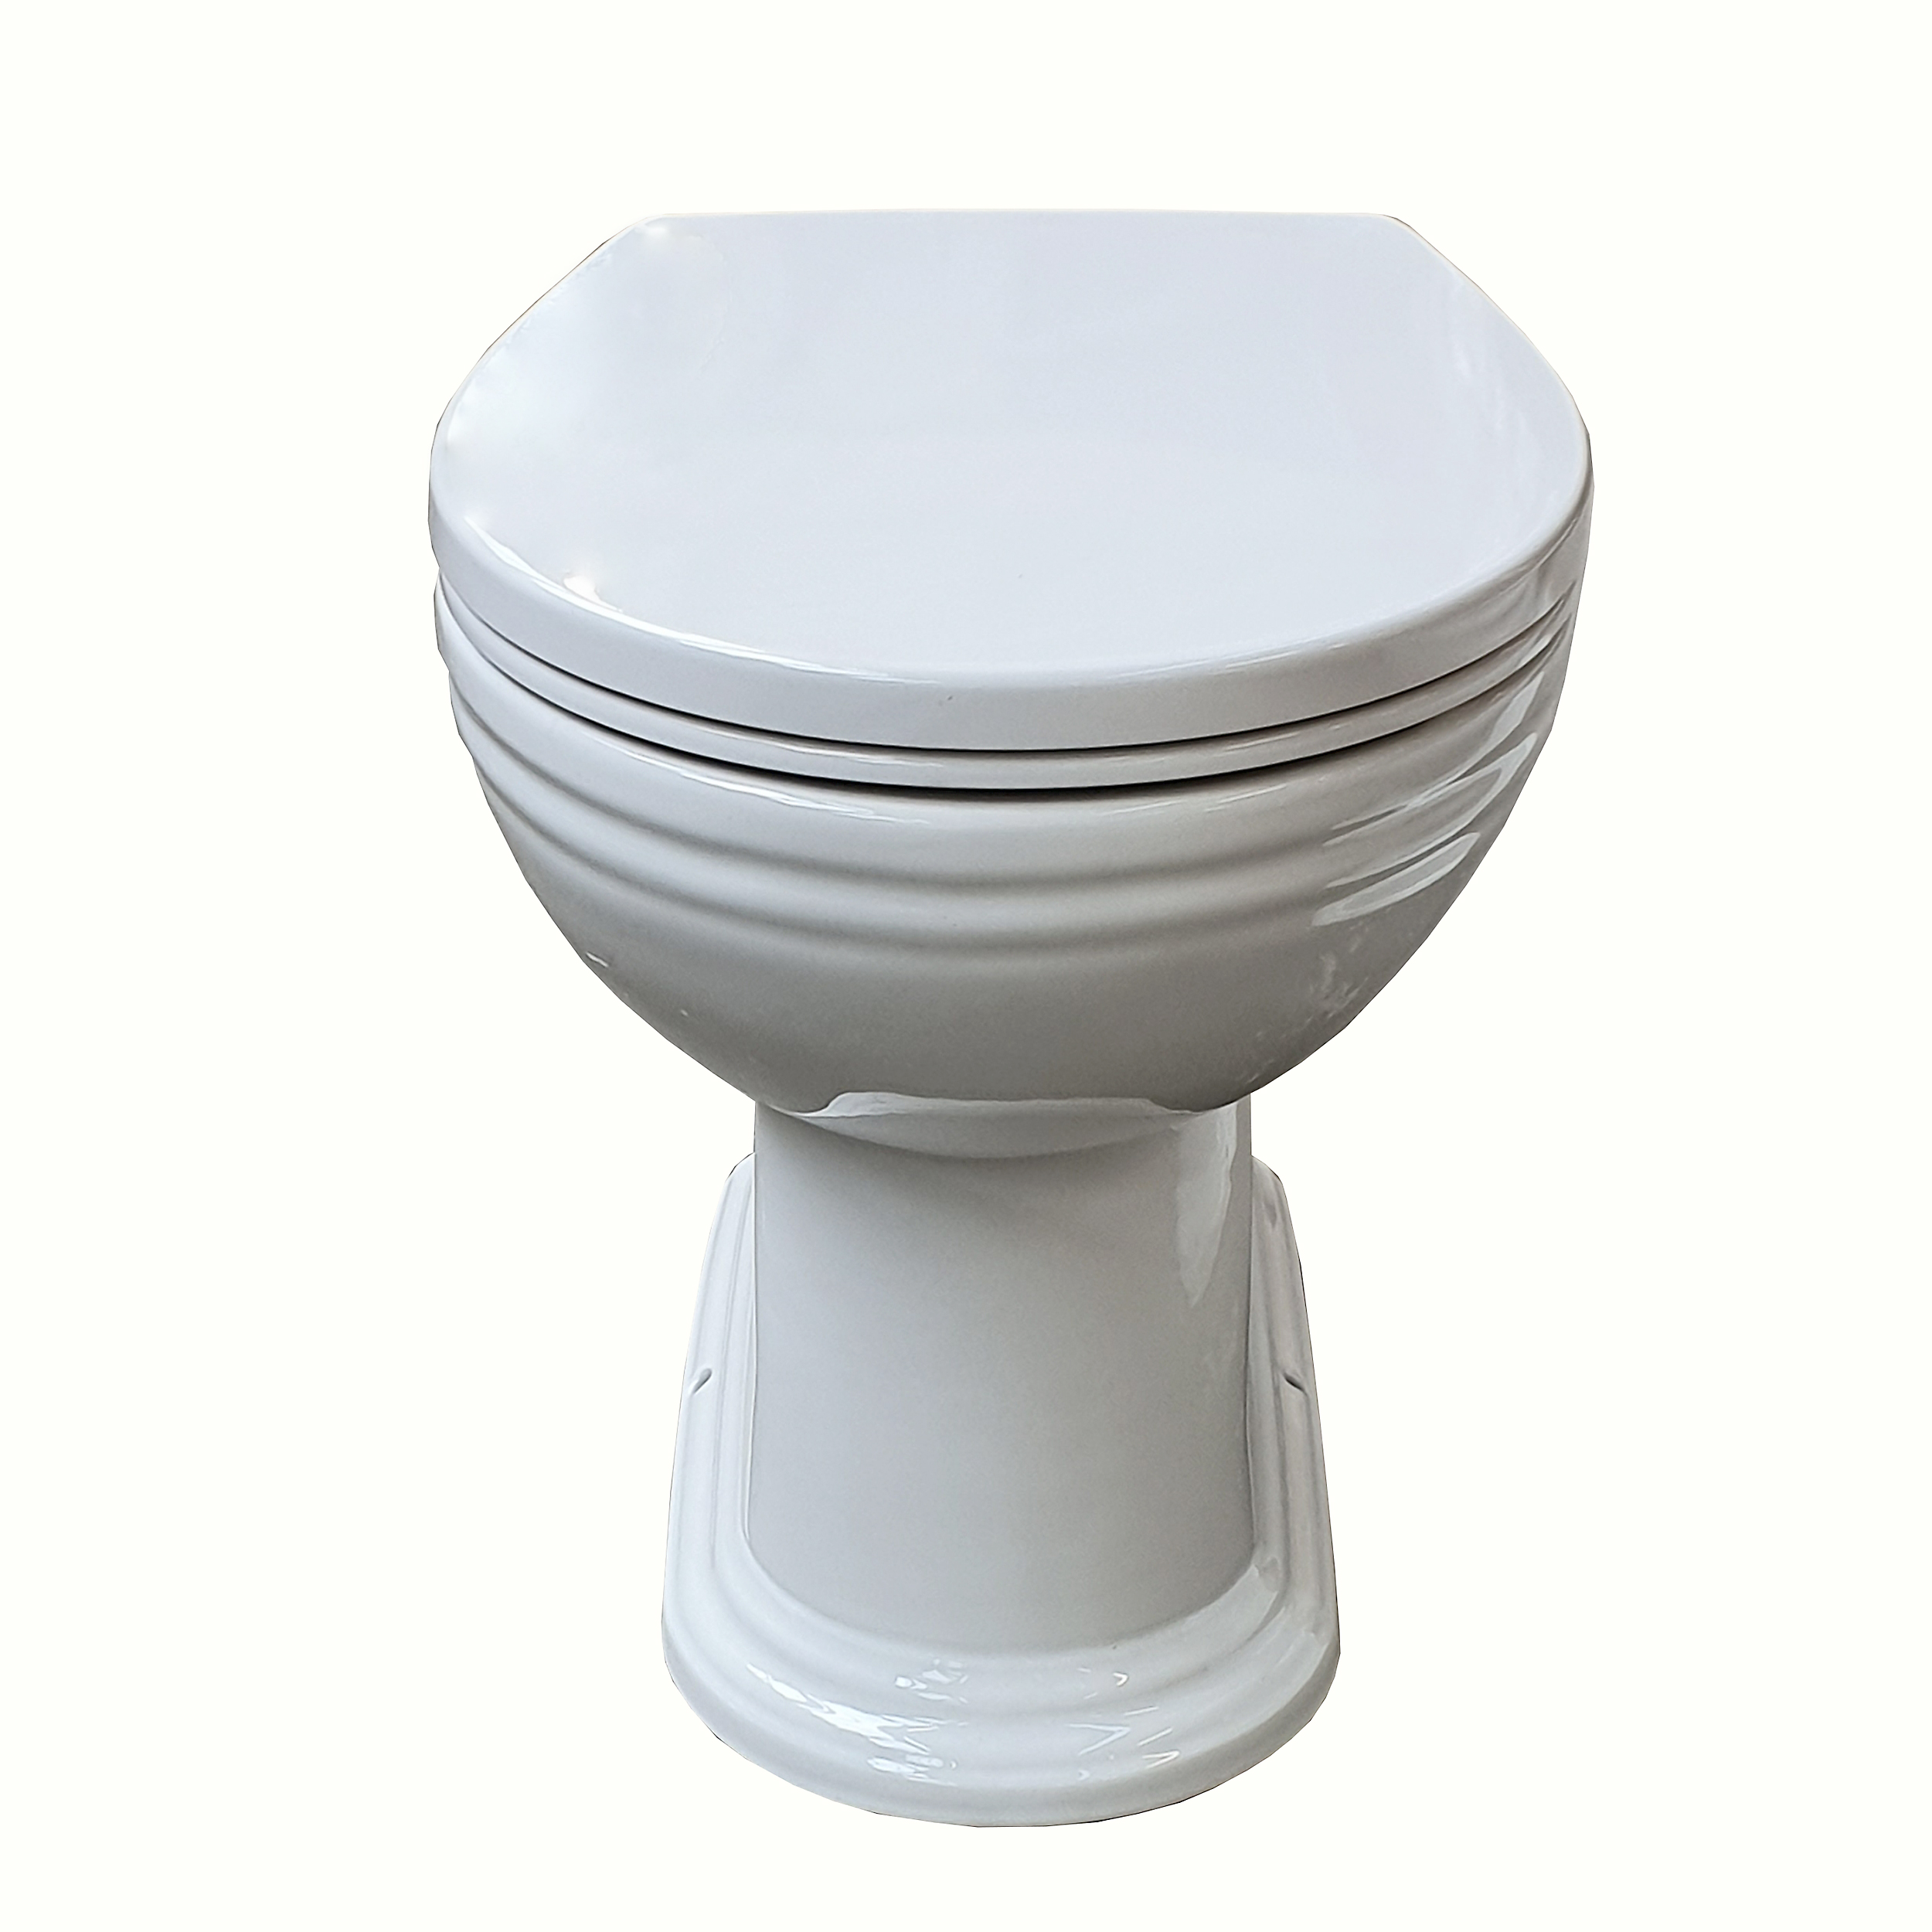 Thomas Crapper Venerable Back-to-Wall Toilet with Essentia Seat (closed)